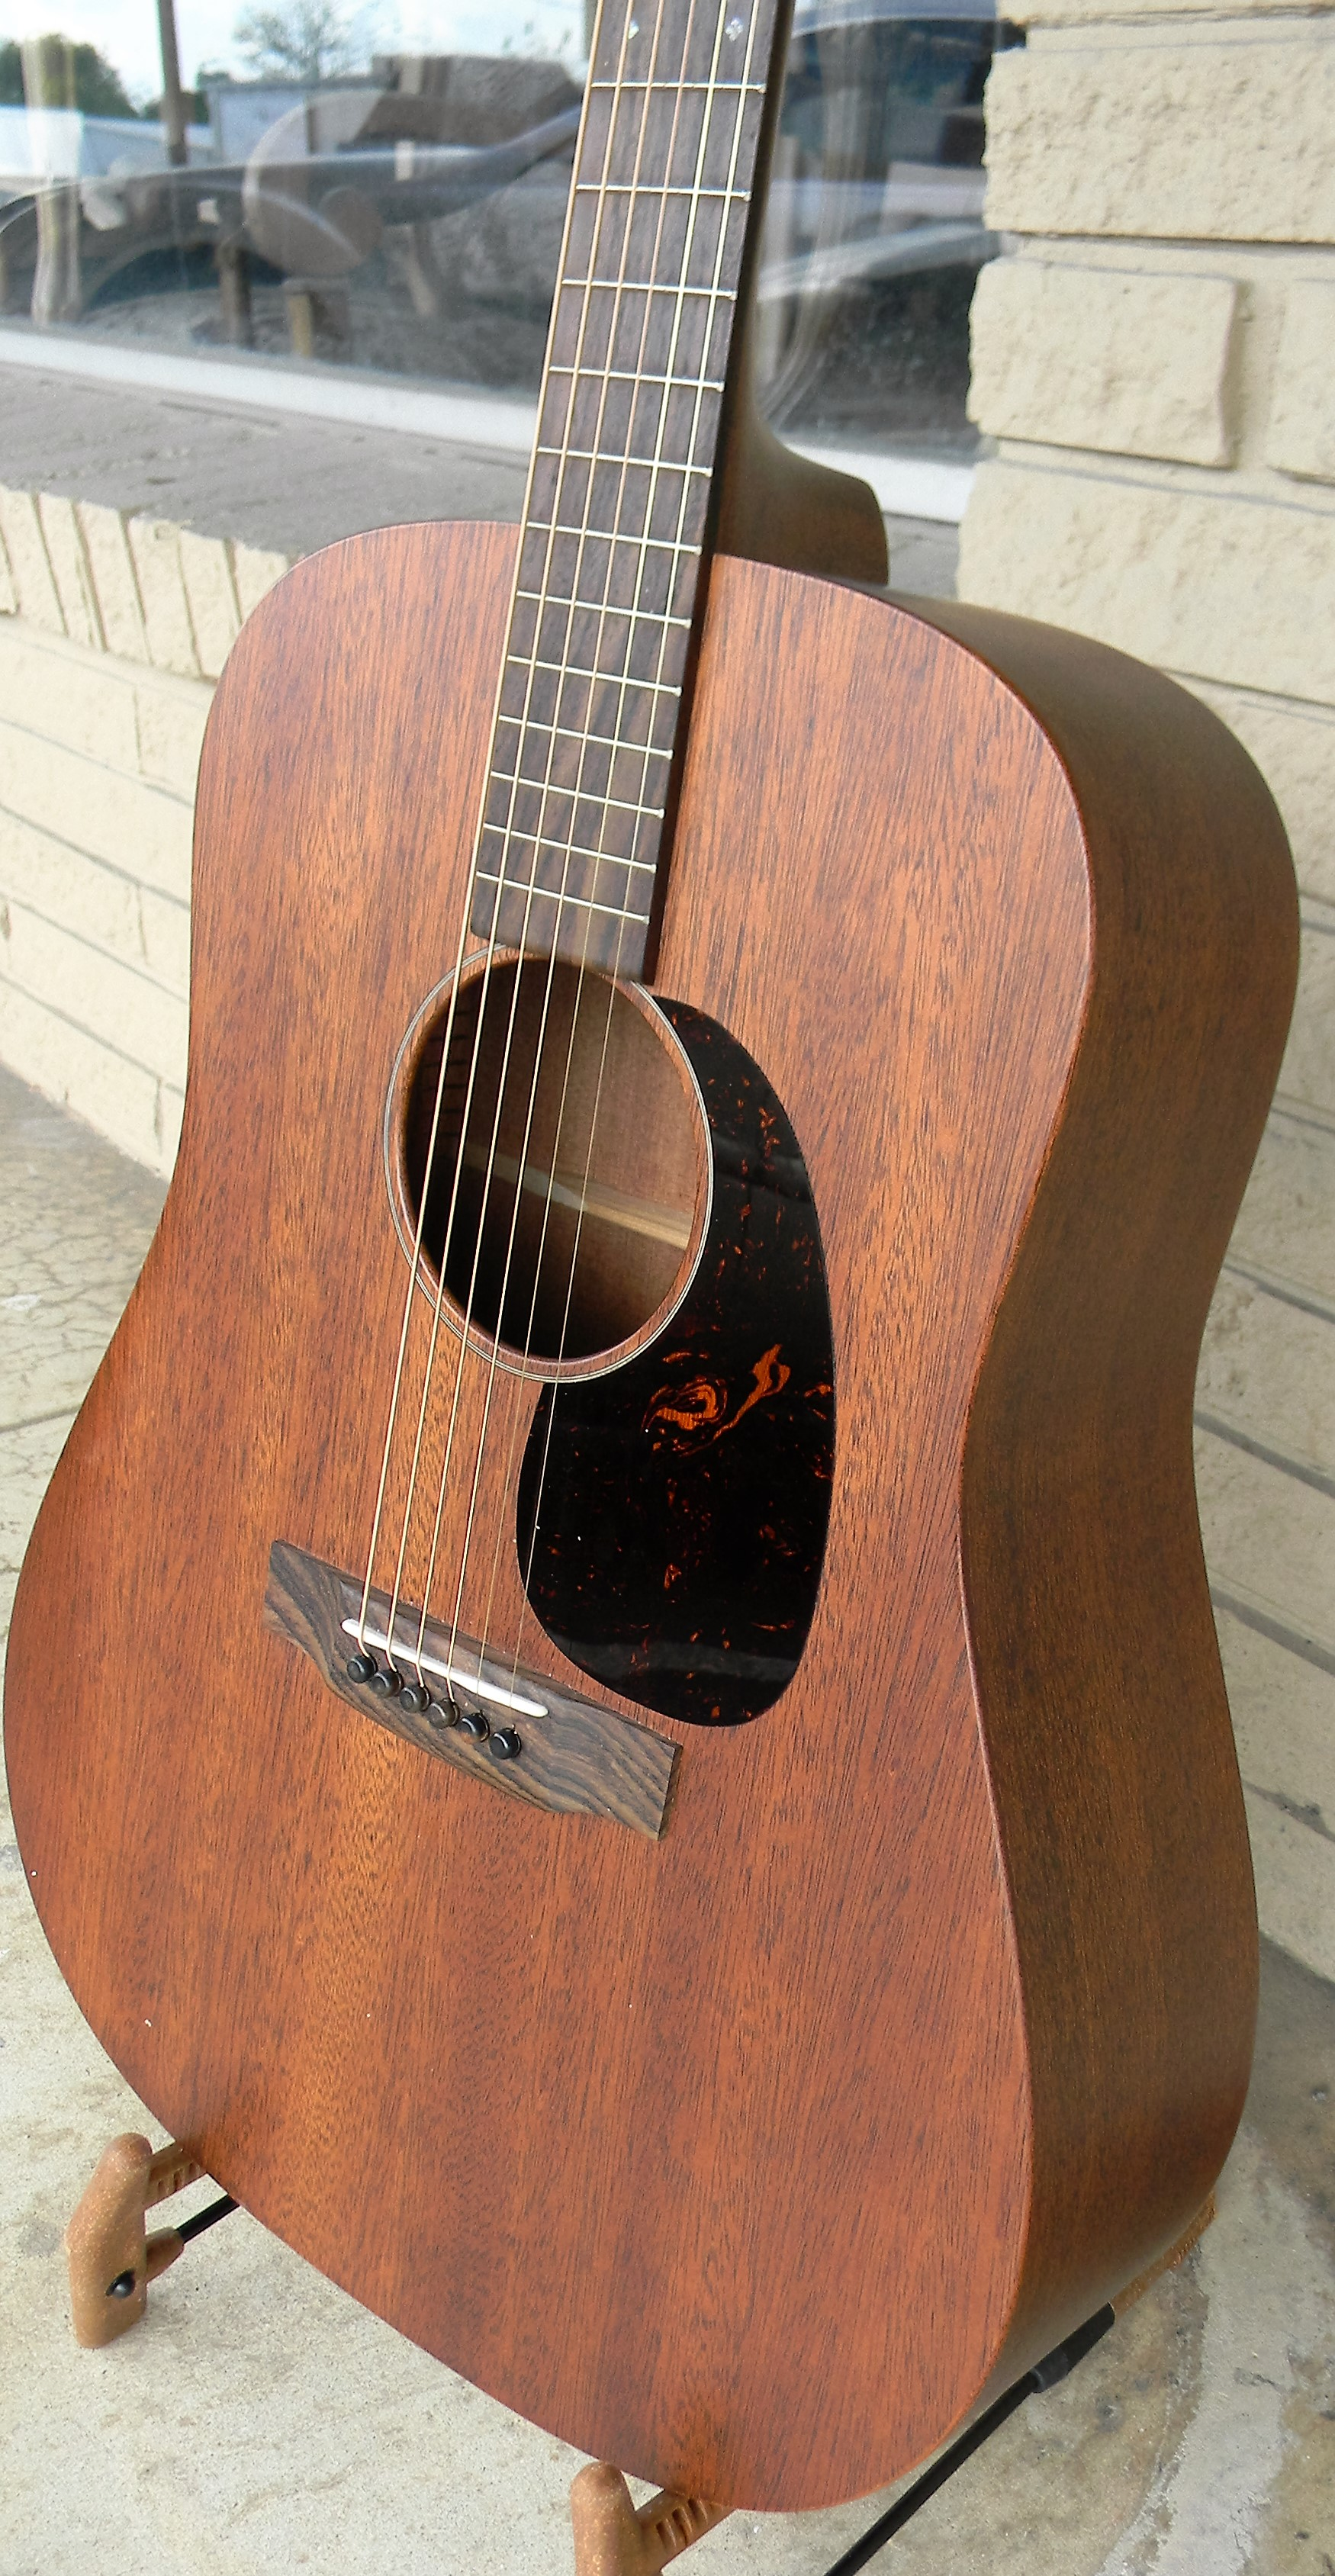 2015 Martin D15M Gently used $995.00 sells new $1,449.00 Won't last long